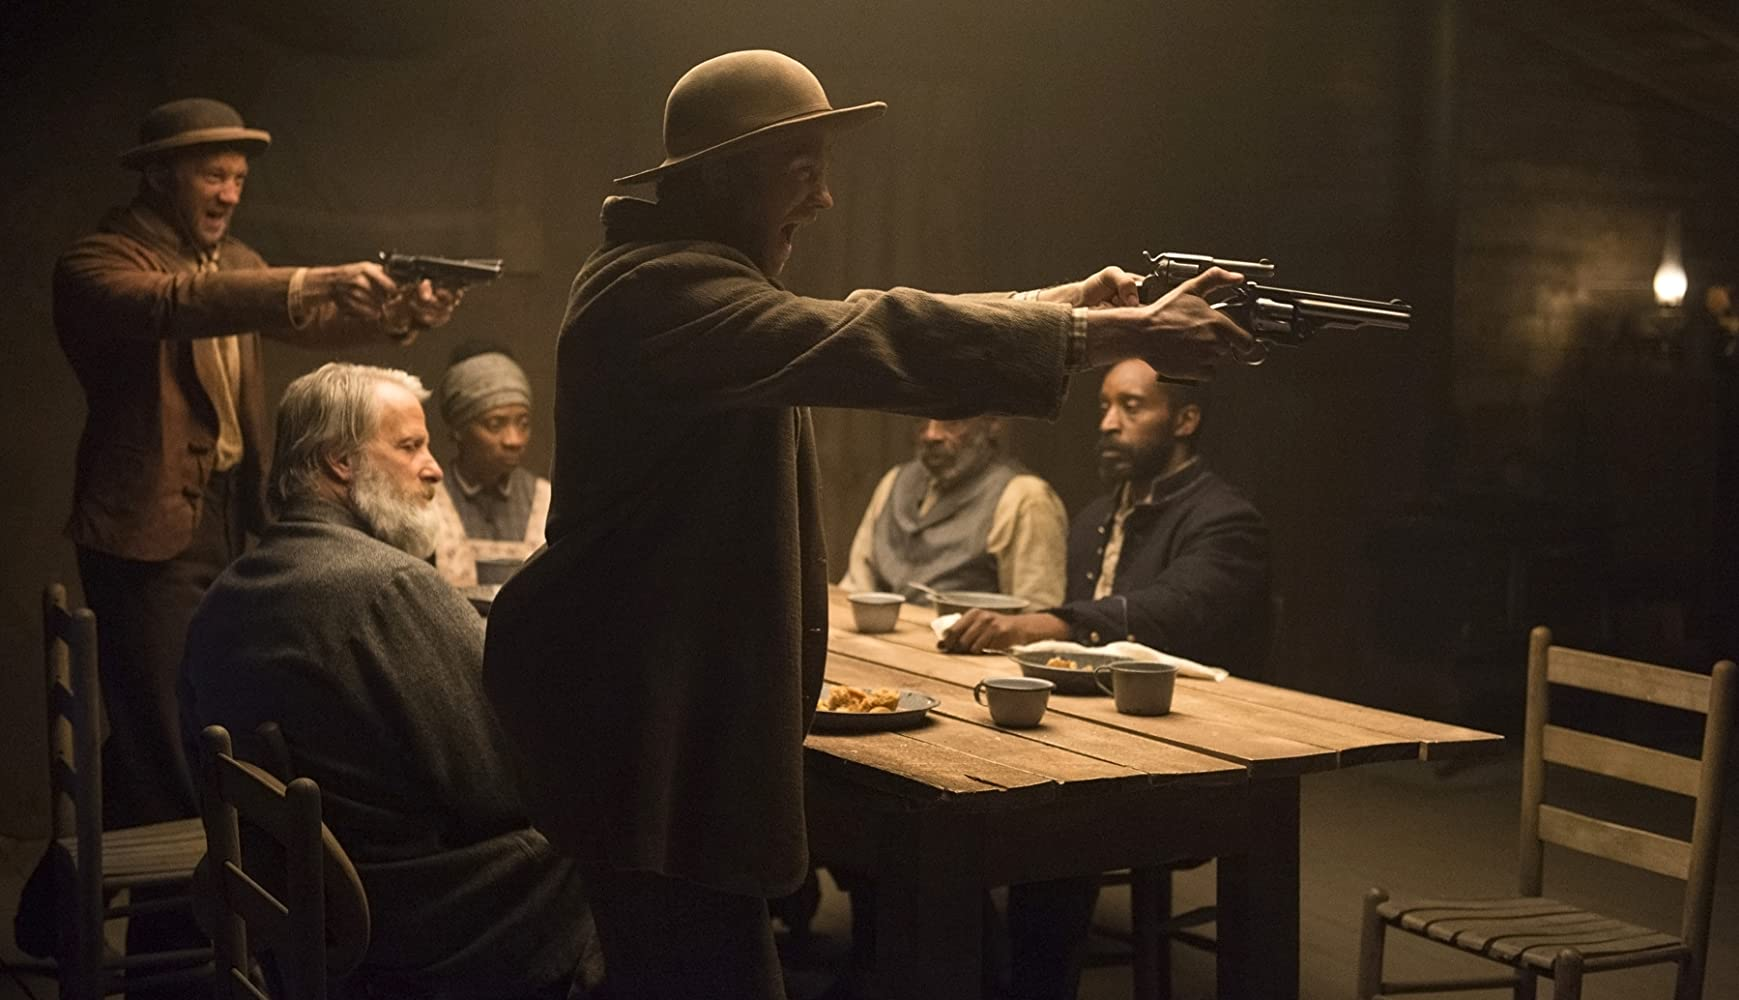 Godless S01E03 – Wisdom of the Horse, serial onlin subtitrat în Română